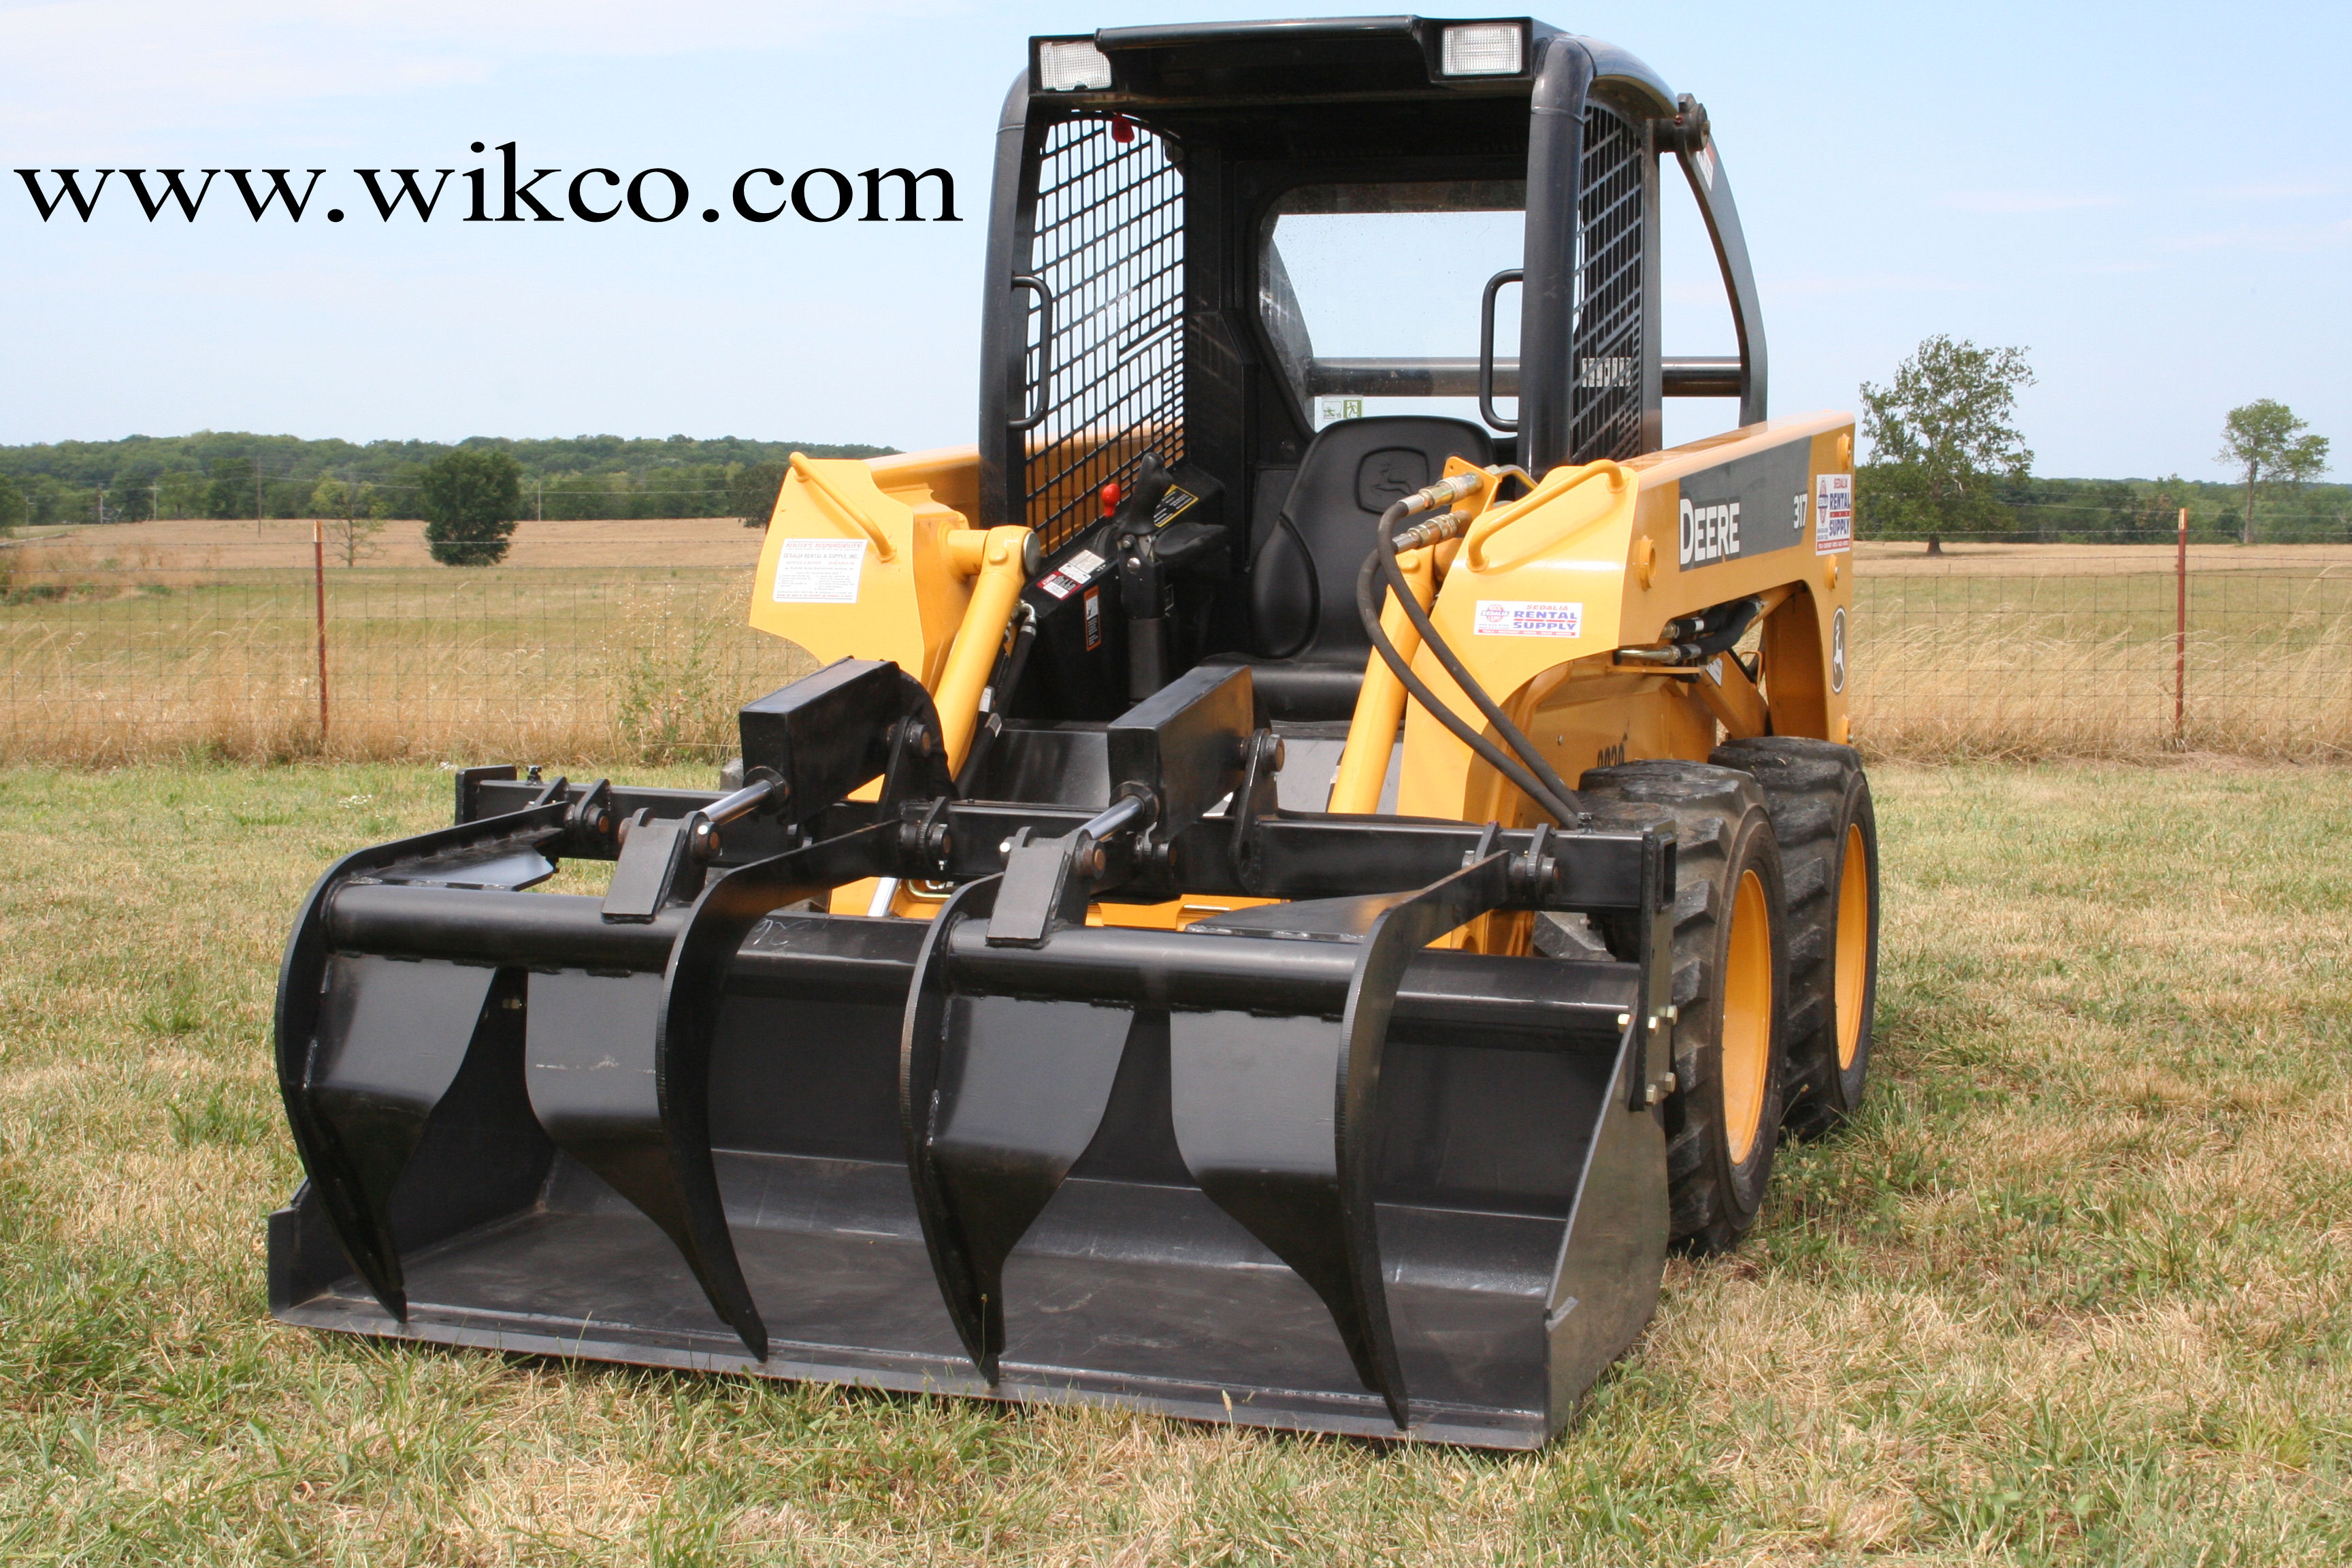 Add-A-Grapple For Skid Steer Loaders